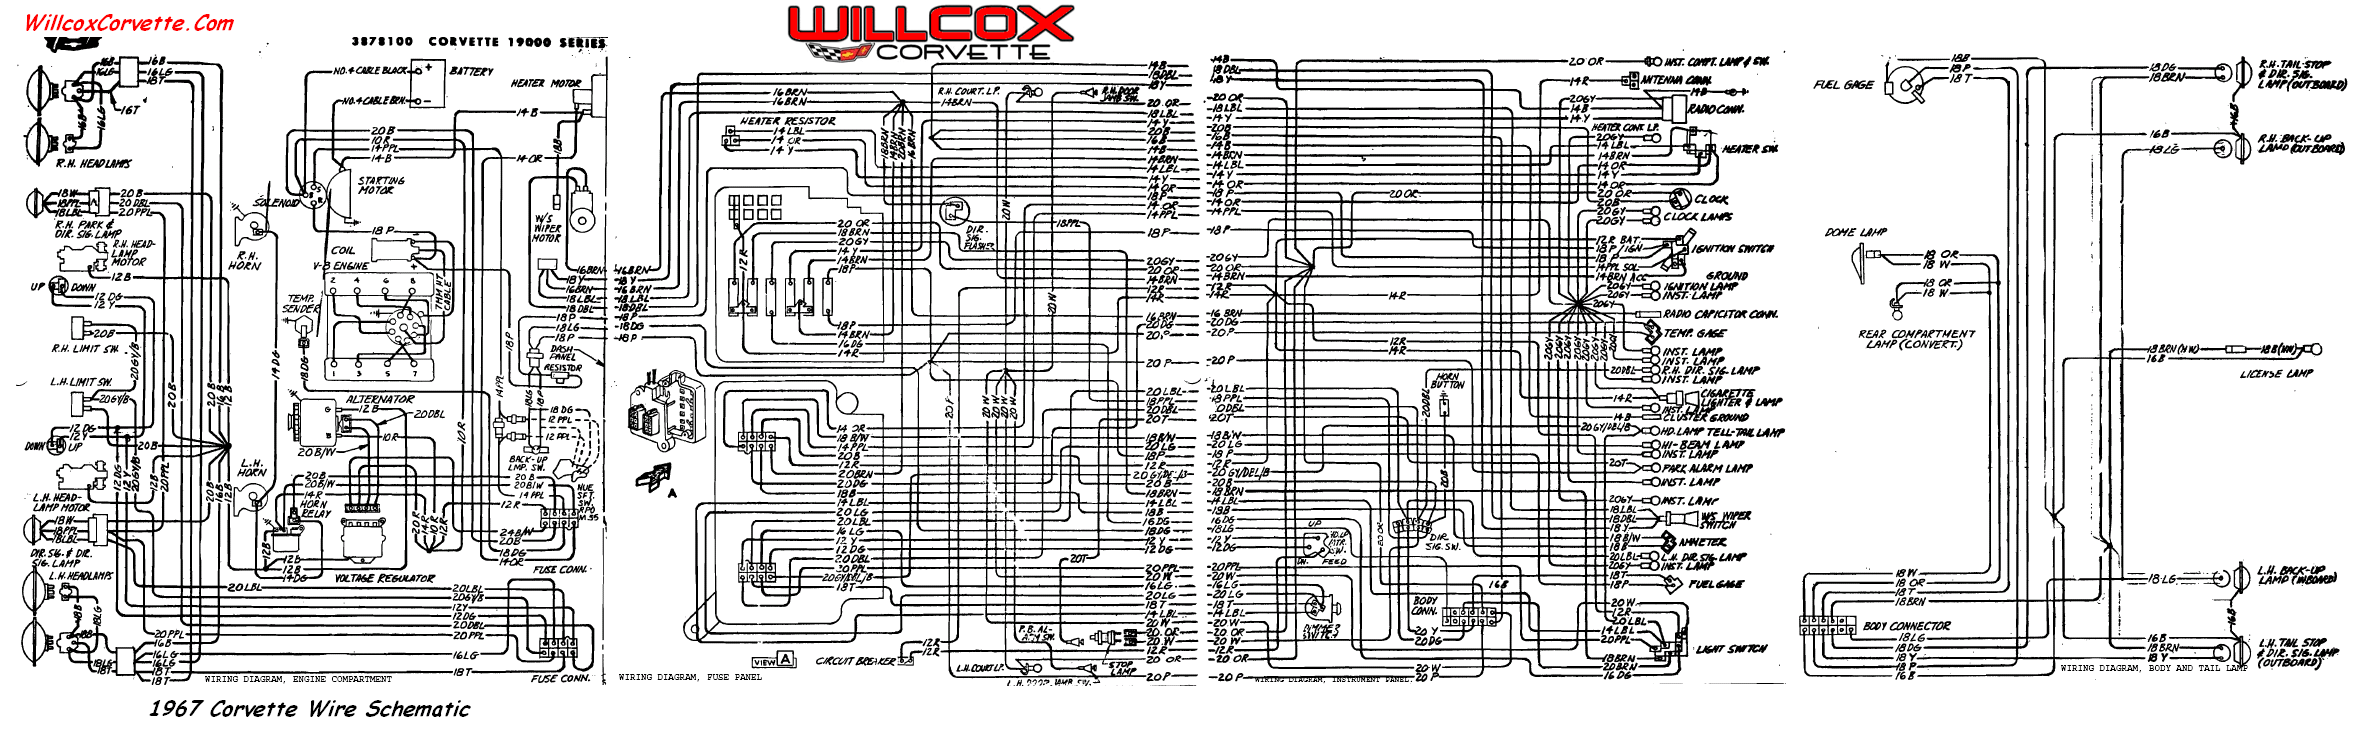 1966 corvette wiring diagram free